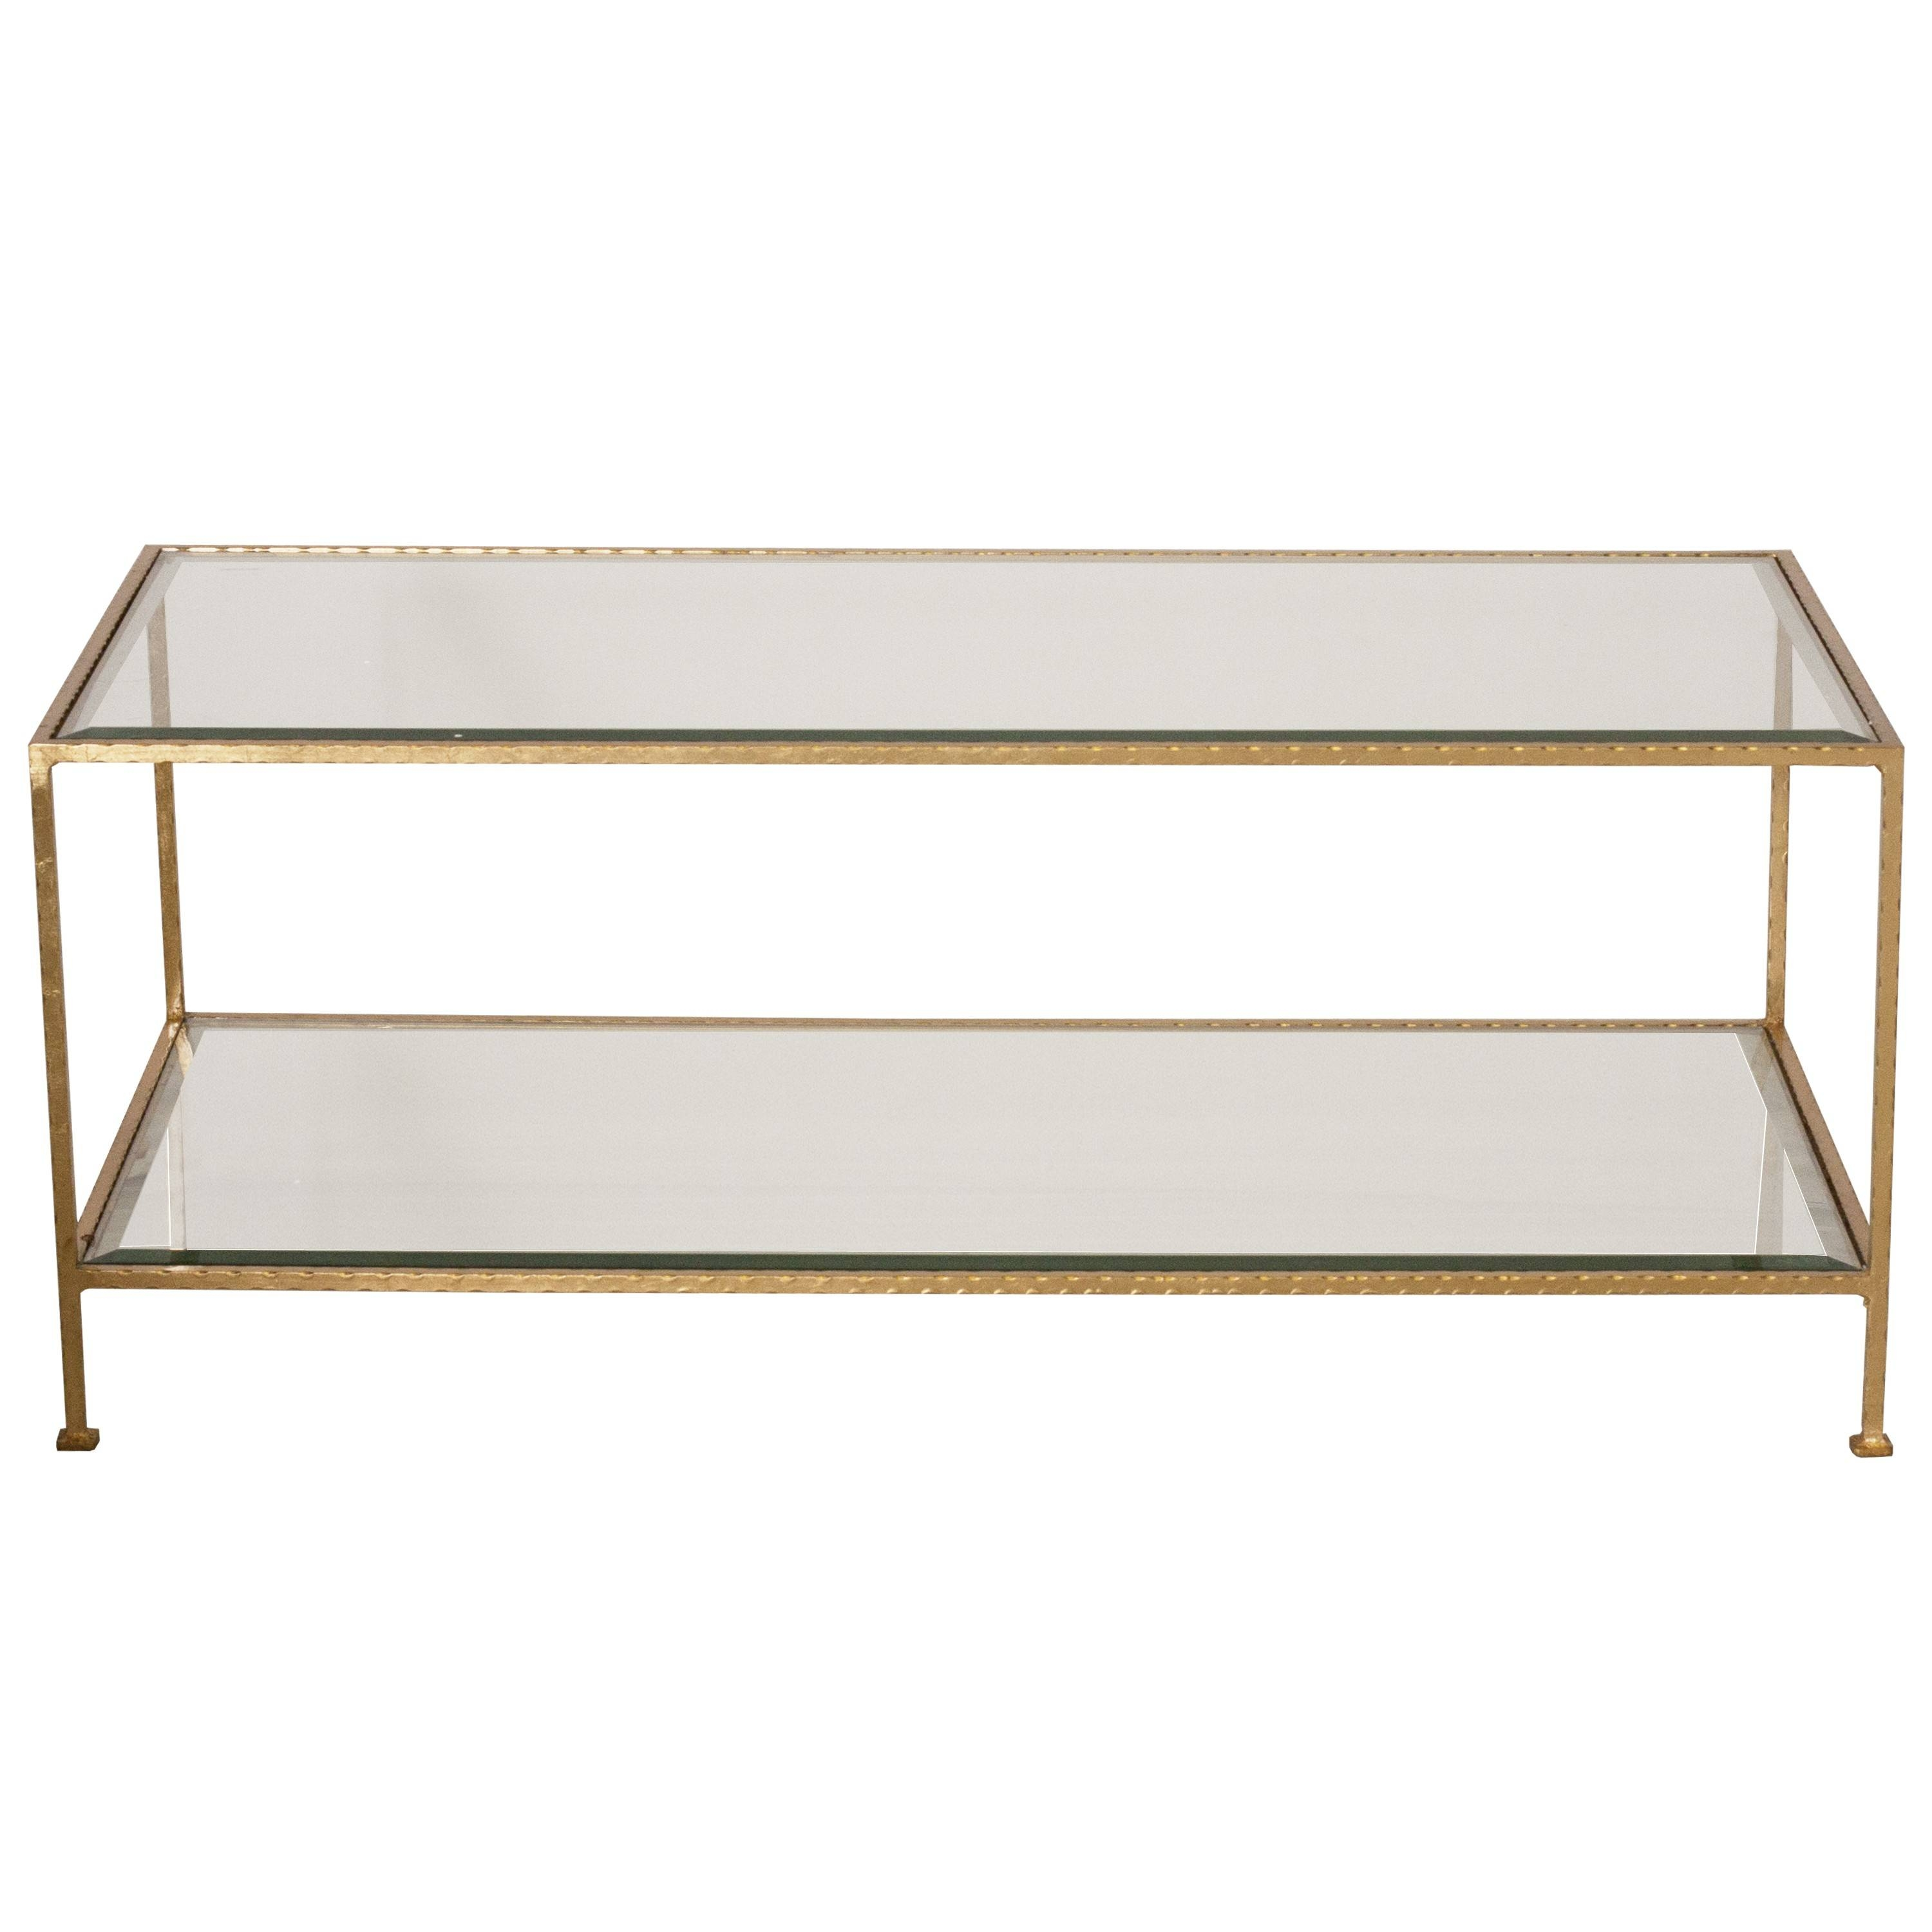 Coffee Table: Stunning Rectangular Glass Coffee Table Designs with regard to Glass Coffee Tables With Shelf (Image 11 of 30)